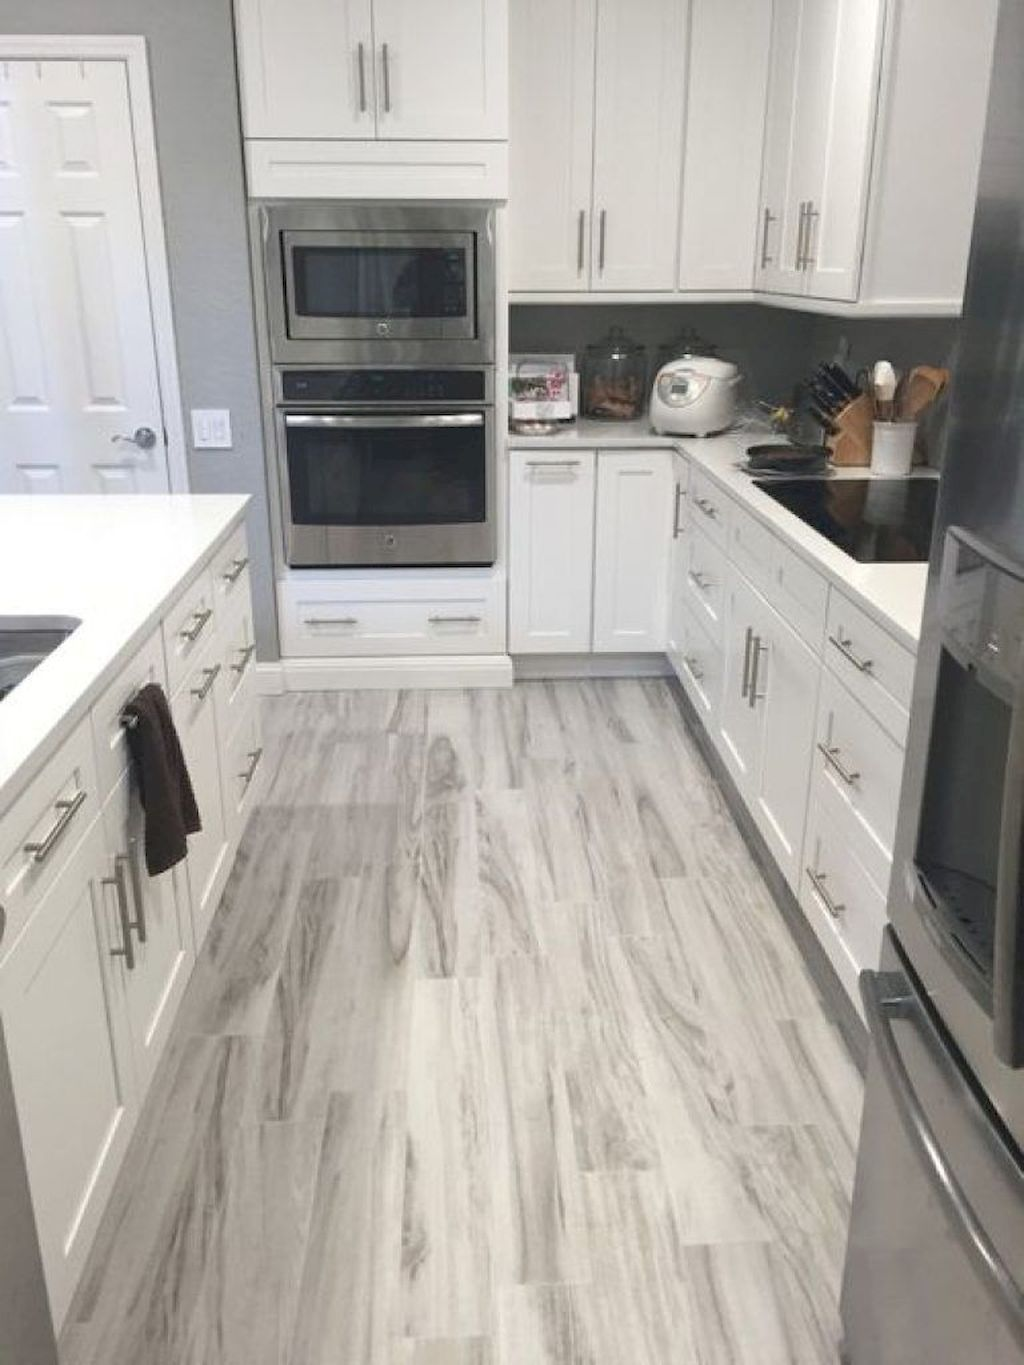 The Important Information To Wood Flooring Grey laminate